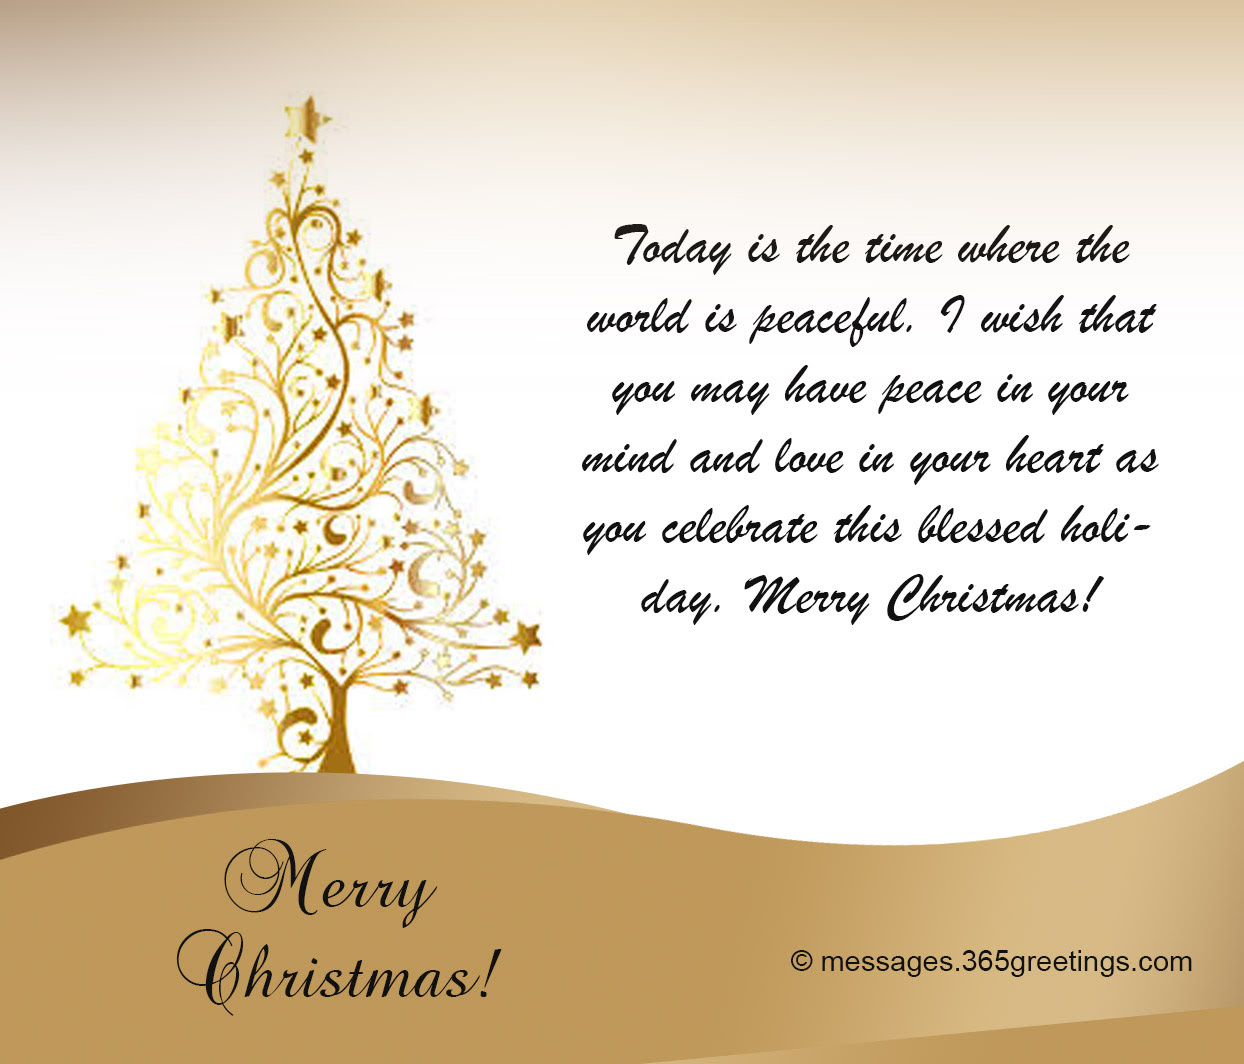 Best Christmas Card Sayings and Greetings - 365greetings.com